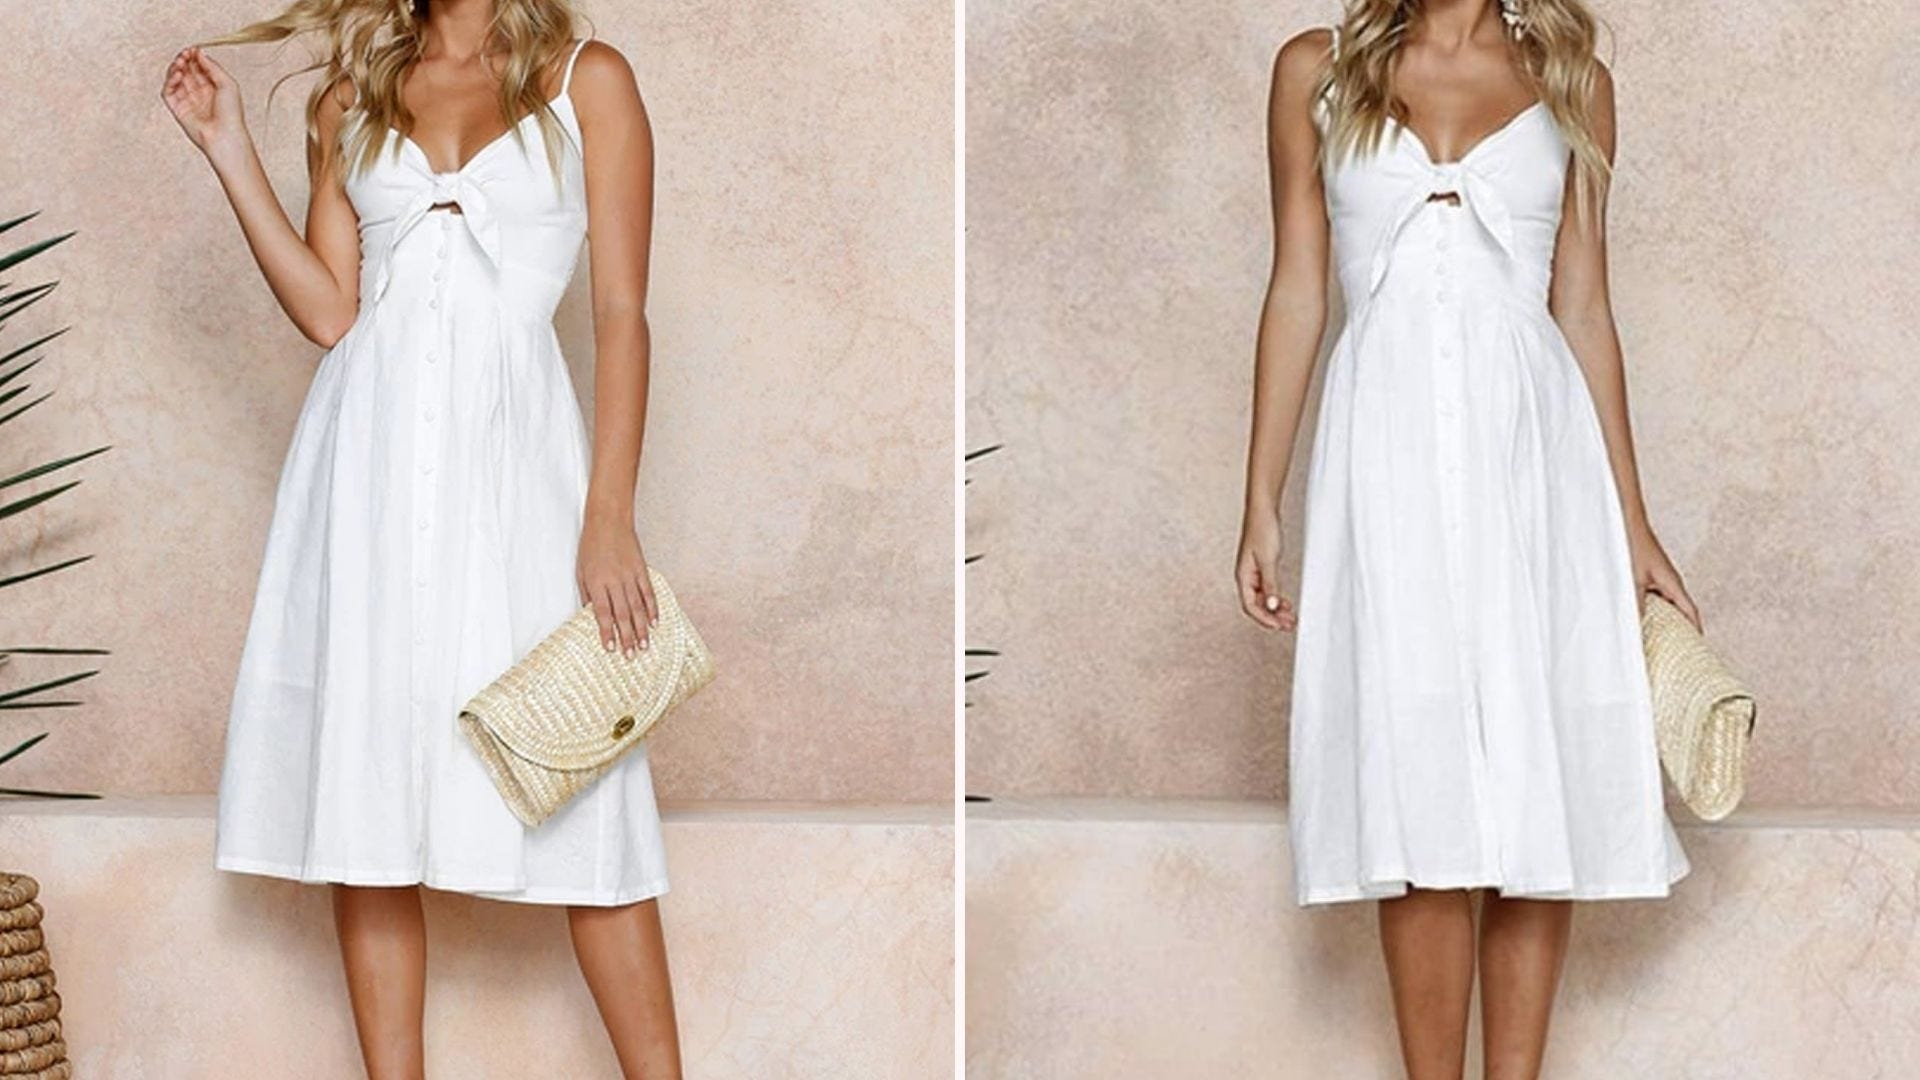 Two images of a woman wearing a white tie-front spaghetti strap dress